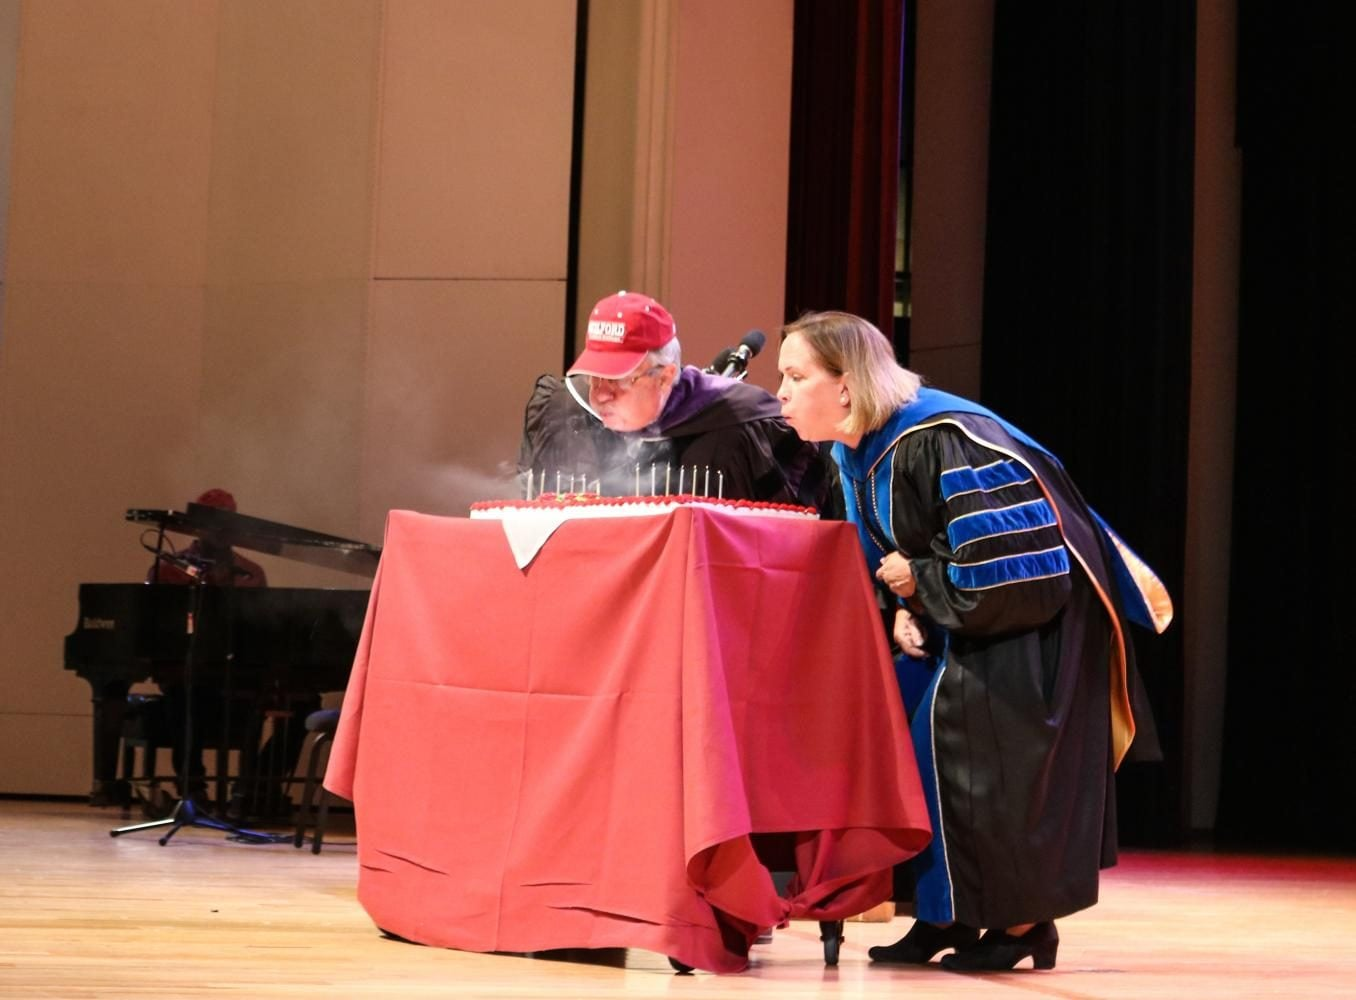 Left to right Edward C. Winslow III and President Jane K. Fernandes blow out candles in celebration of Guilford College's 180th birthday. // Photo by Fernando Jimenez/The Guilfordian